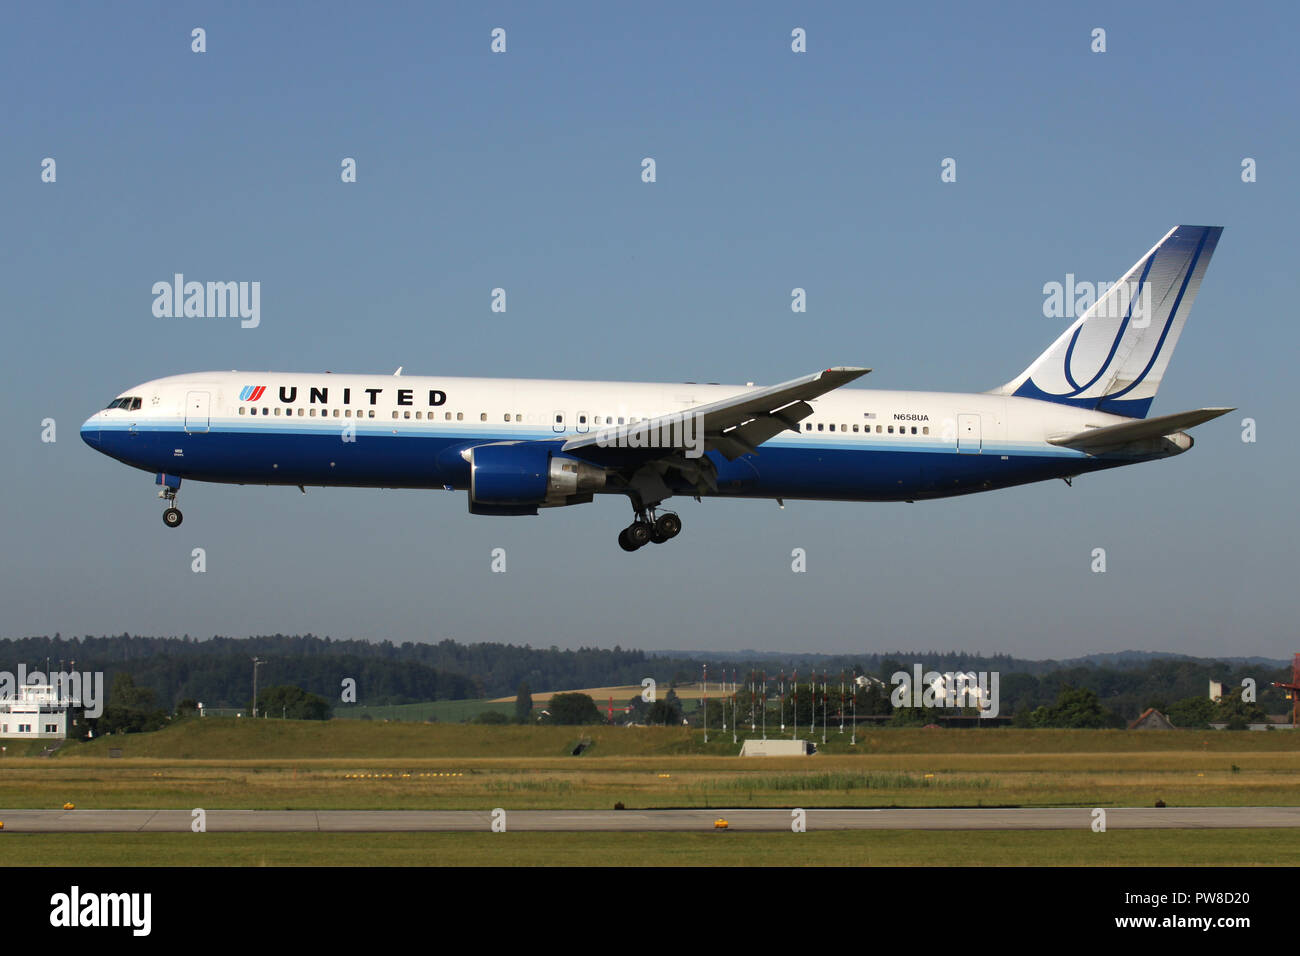 United Airlines Boeing 767-300 (old livery) with registration N658UA